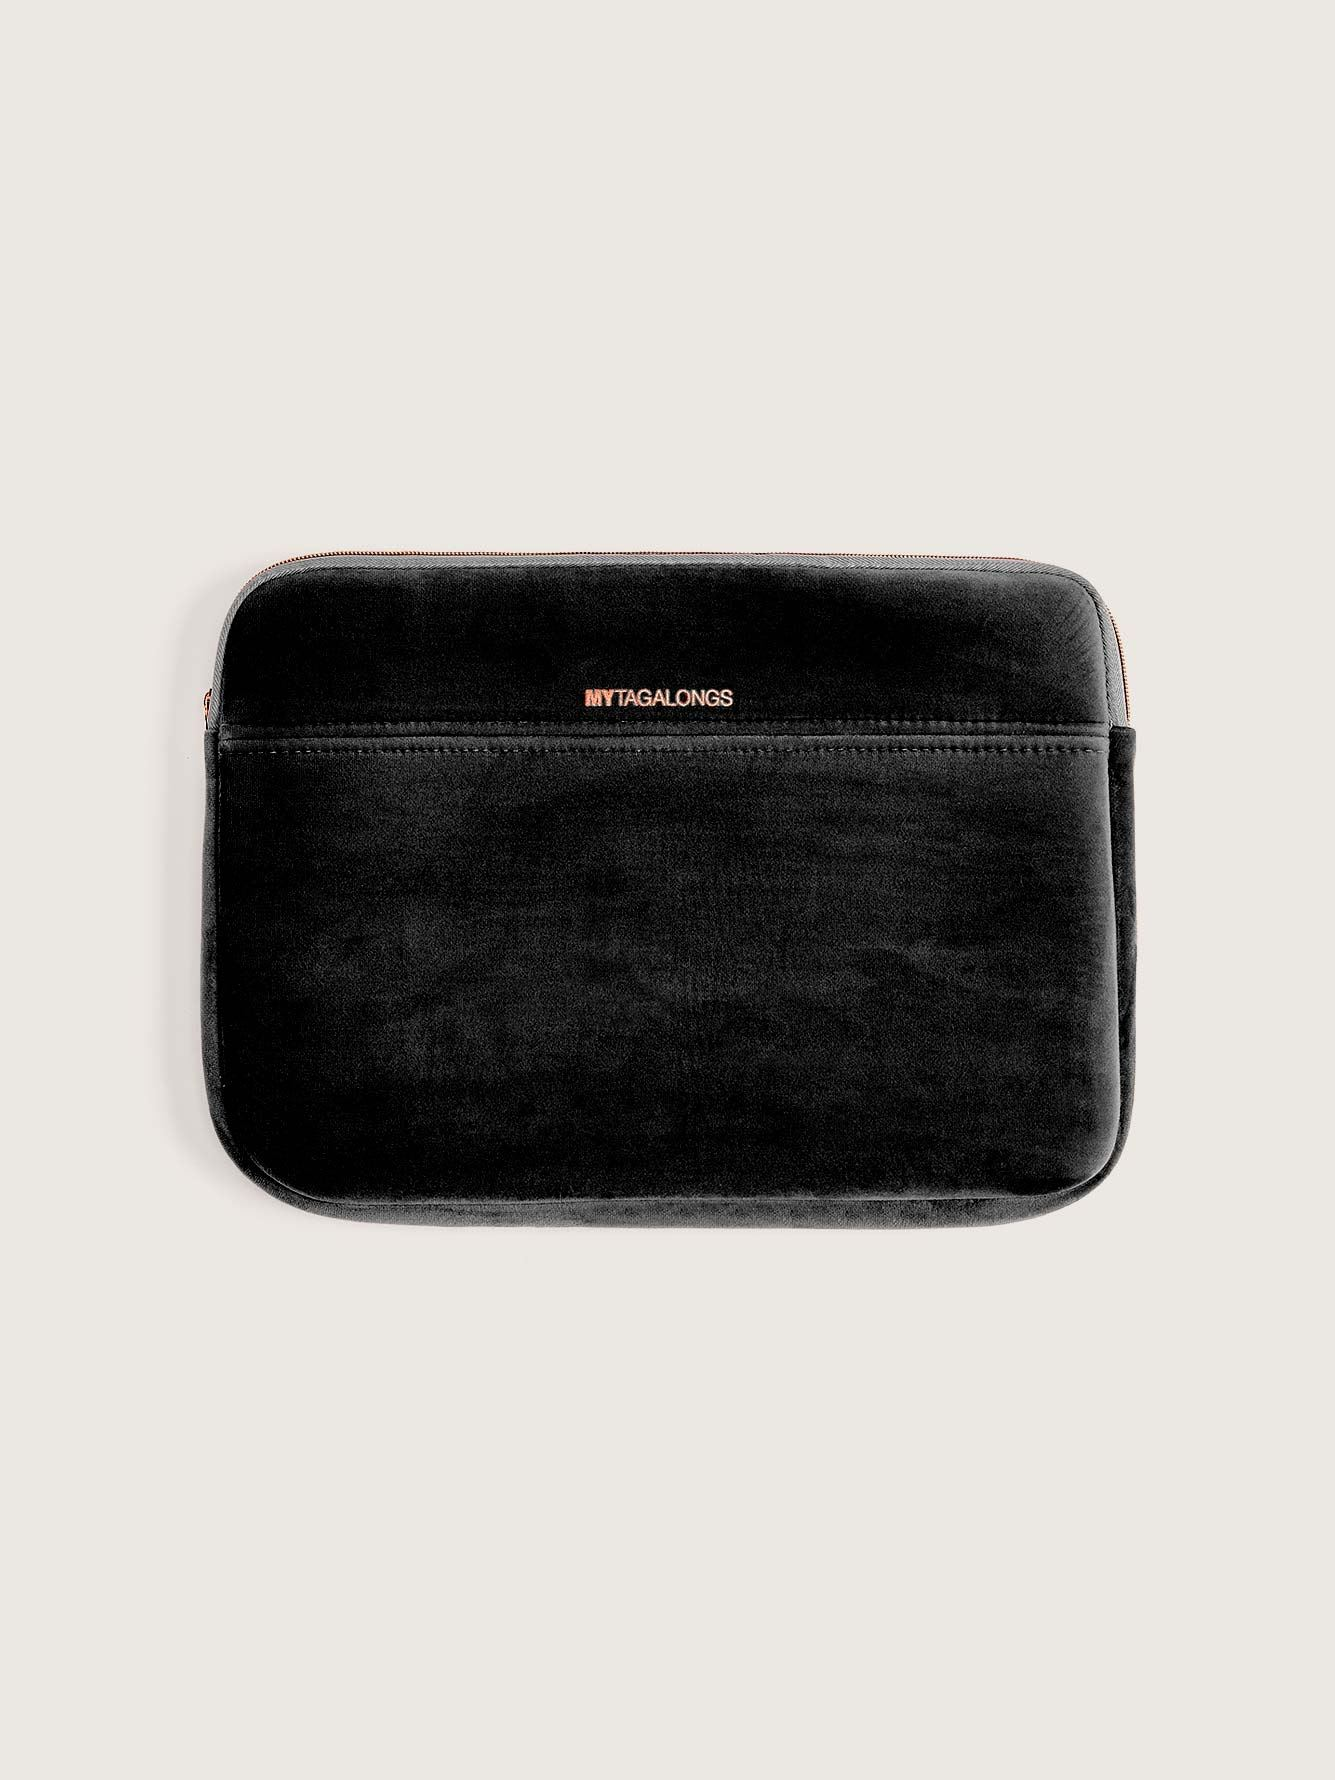 Velvet Vixen Laptop Sleeve - MyTagalongs